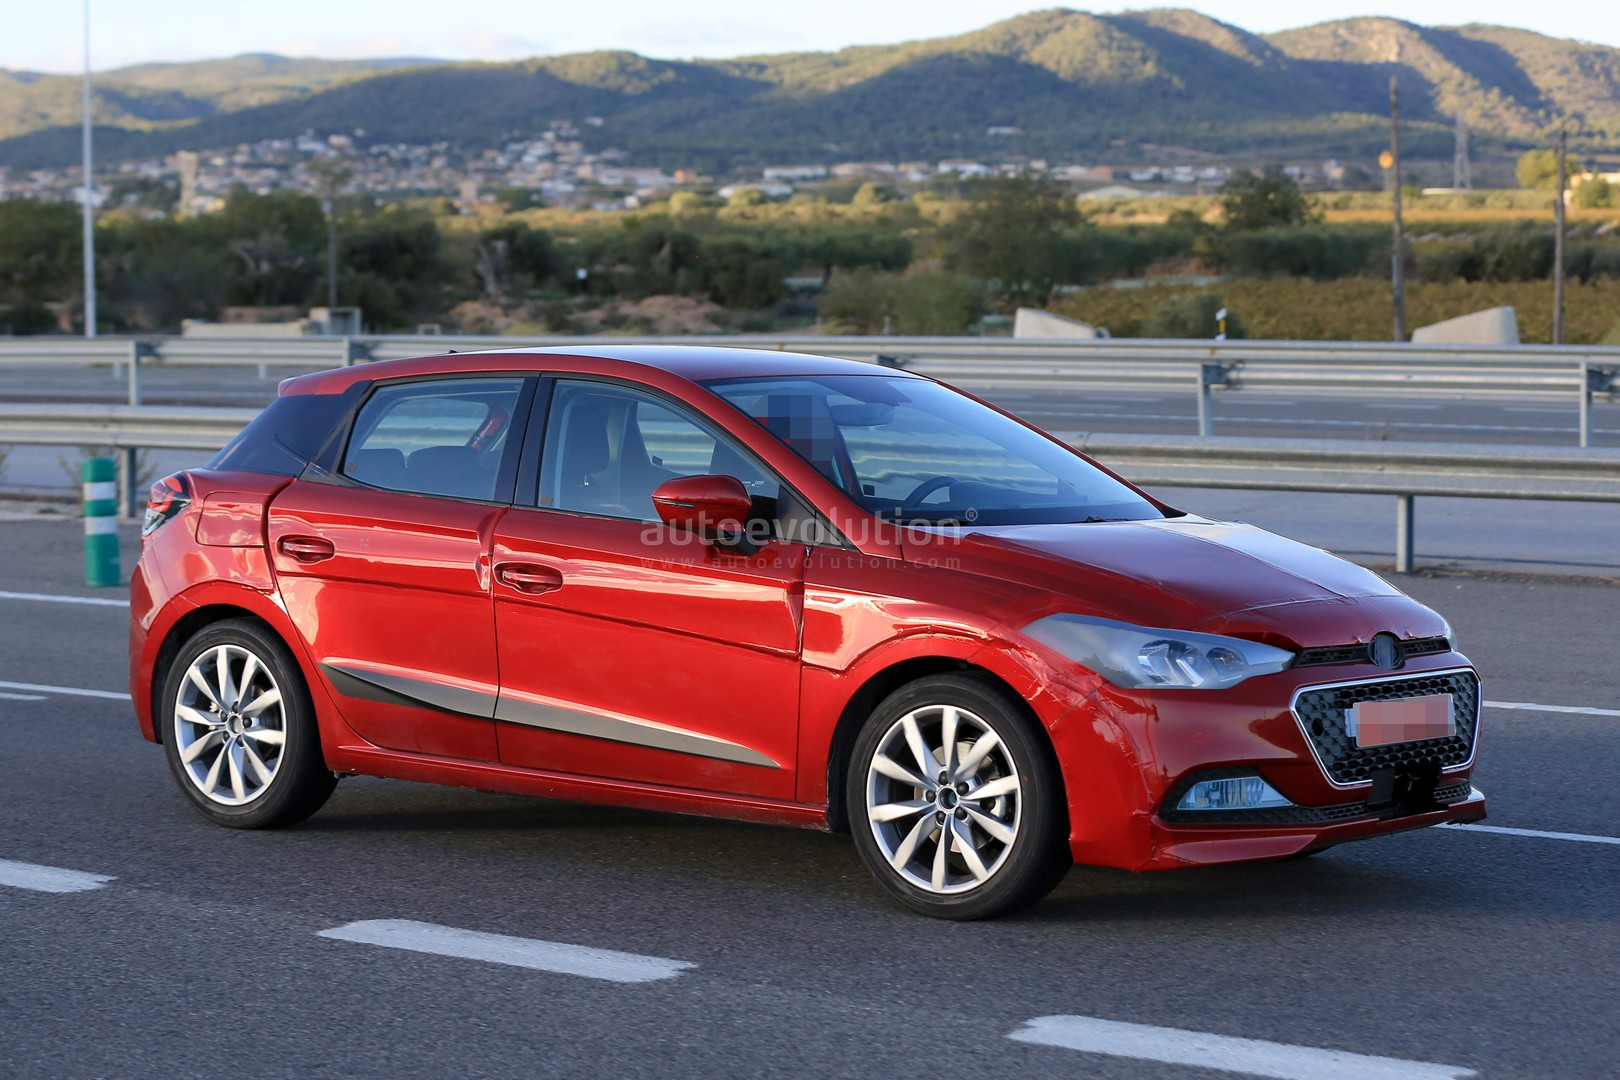 2017 seat ibiza camouflaged as hyundai i20 is just epic autoevolution. Black Bedroom Furniture Sets. Home Design Ideas